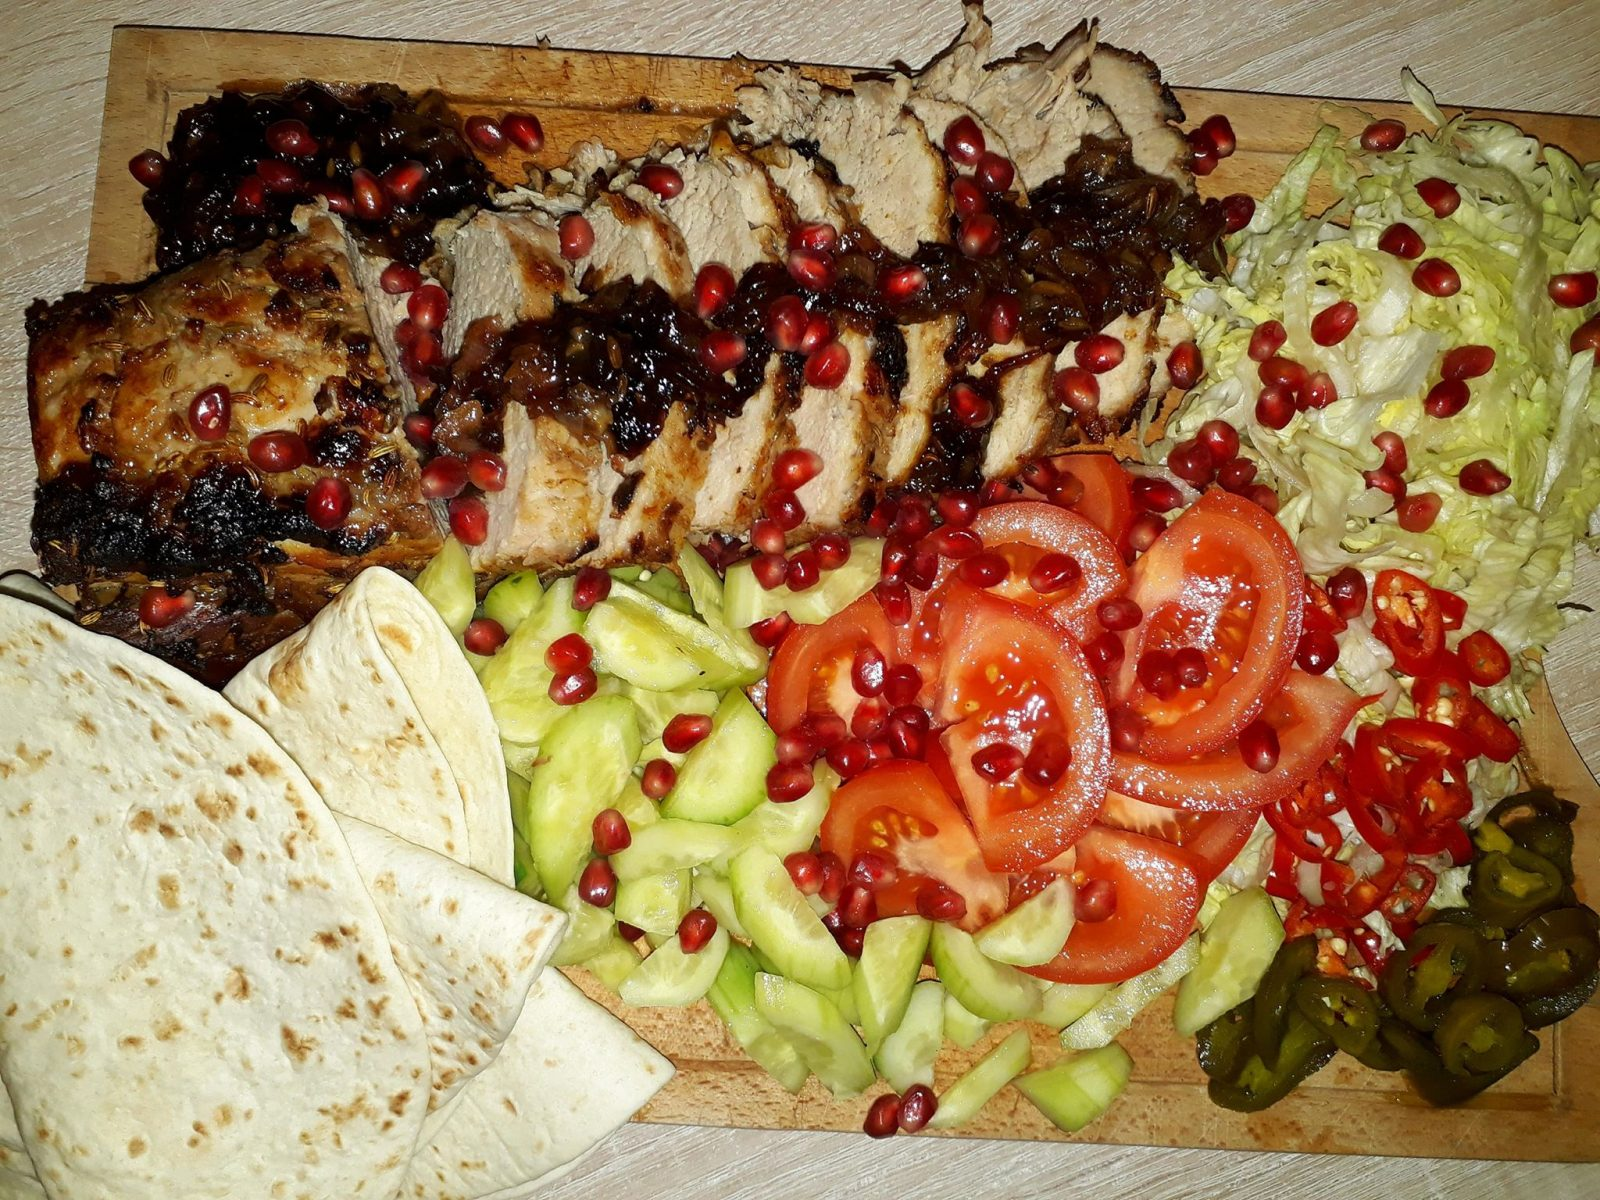 Posh pork kebab jamie olivers recipe maglianos comfort food as jamie says this is my dressed up version of a good old kebab beautiful roast pork sweet onions and all the extra trimmings people go mad for it forumfinder Image collections